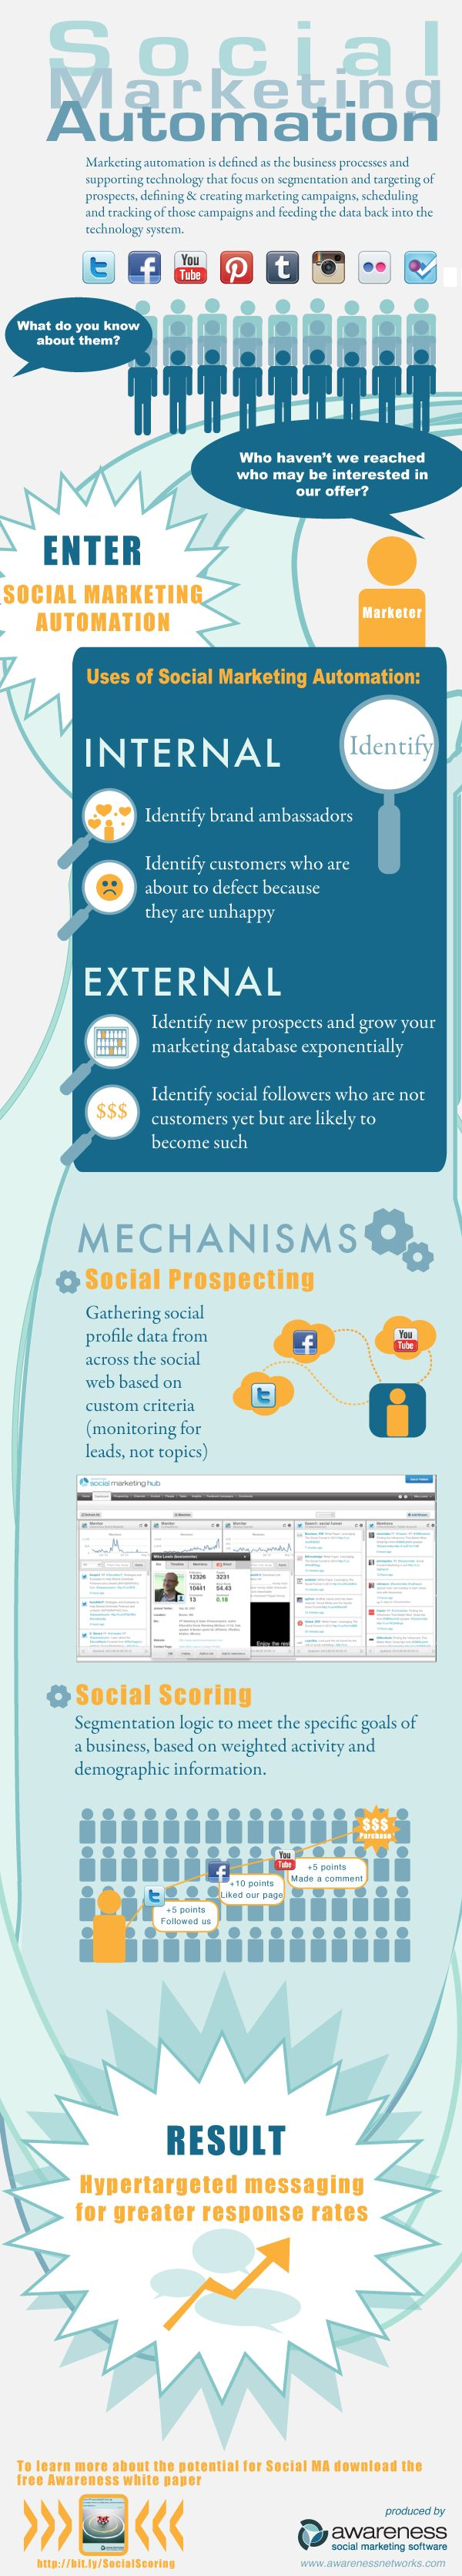 Social Marketing Automation Infographic Awareness Inc